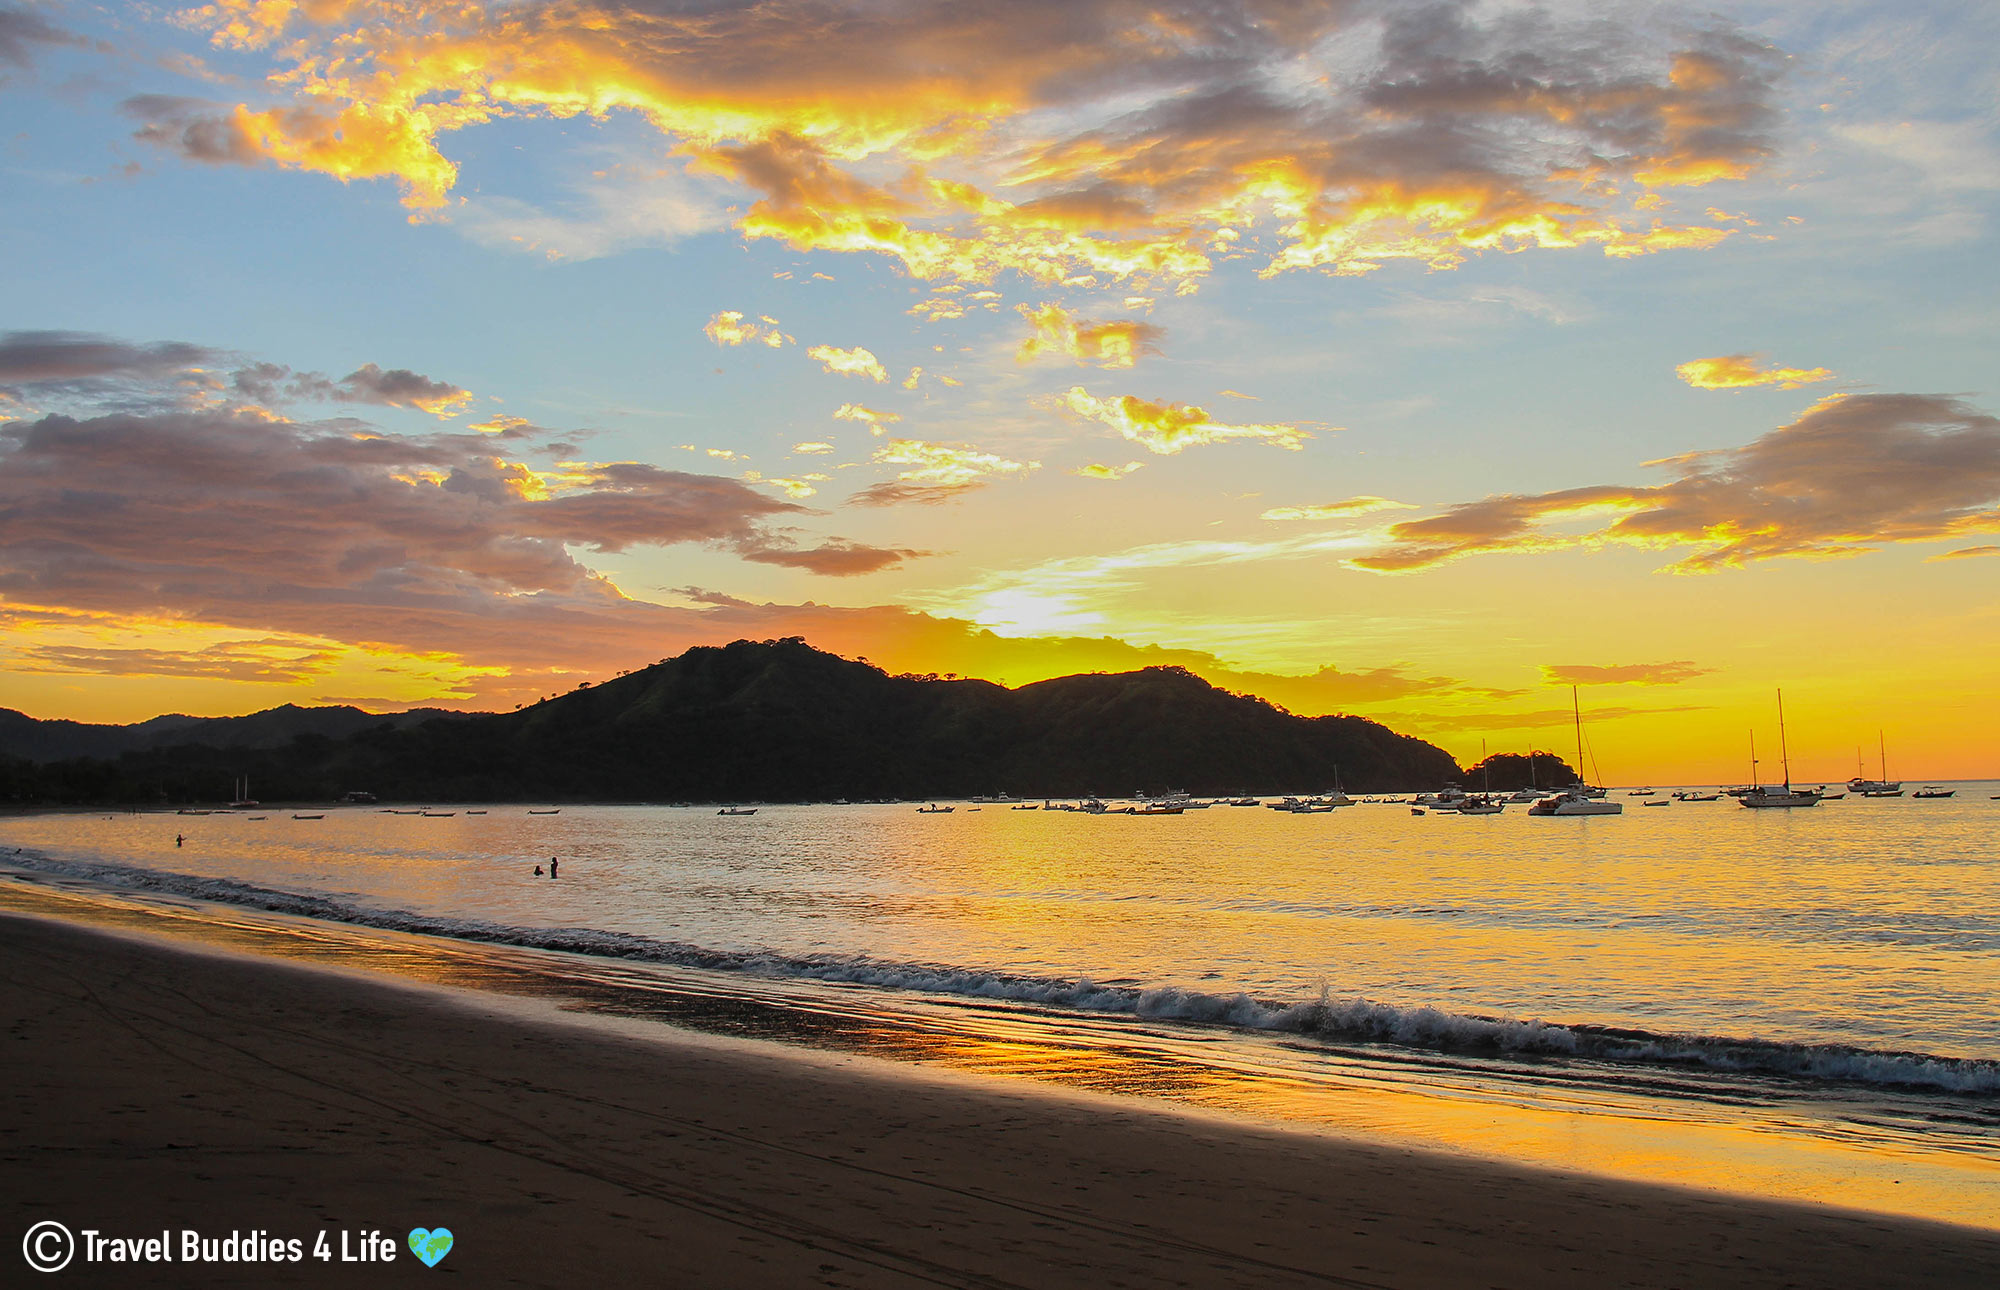 Playas Del Coco Sandy Beach At Sunset With Fishing And Sail Boats, Costa Rica Travels, Central America